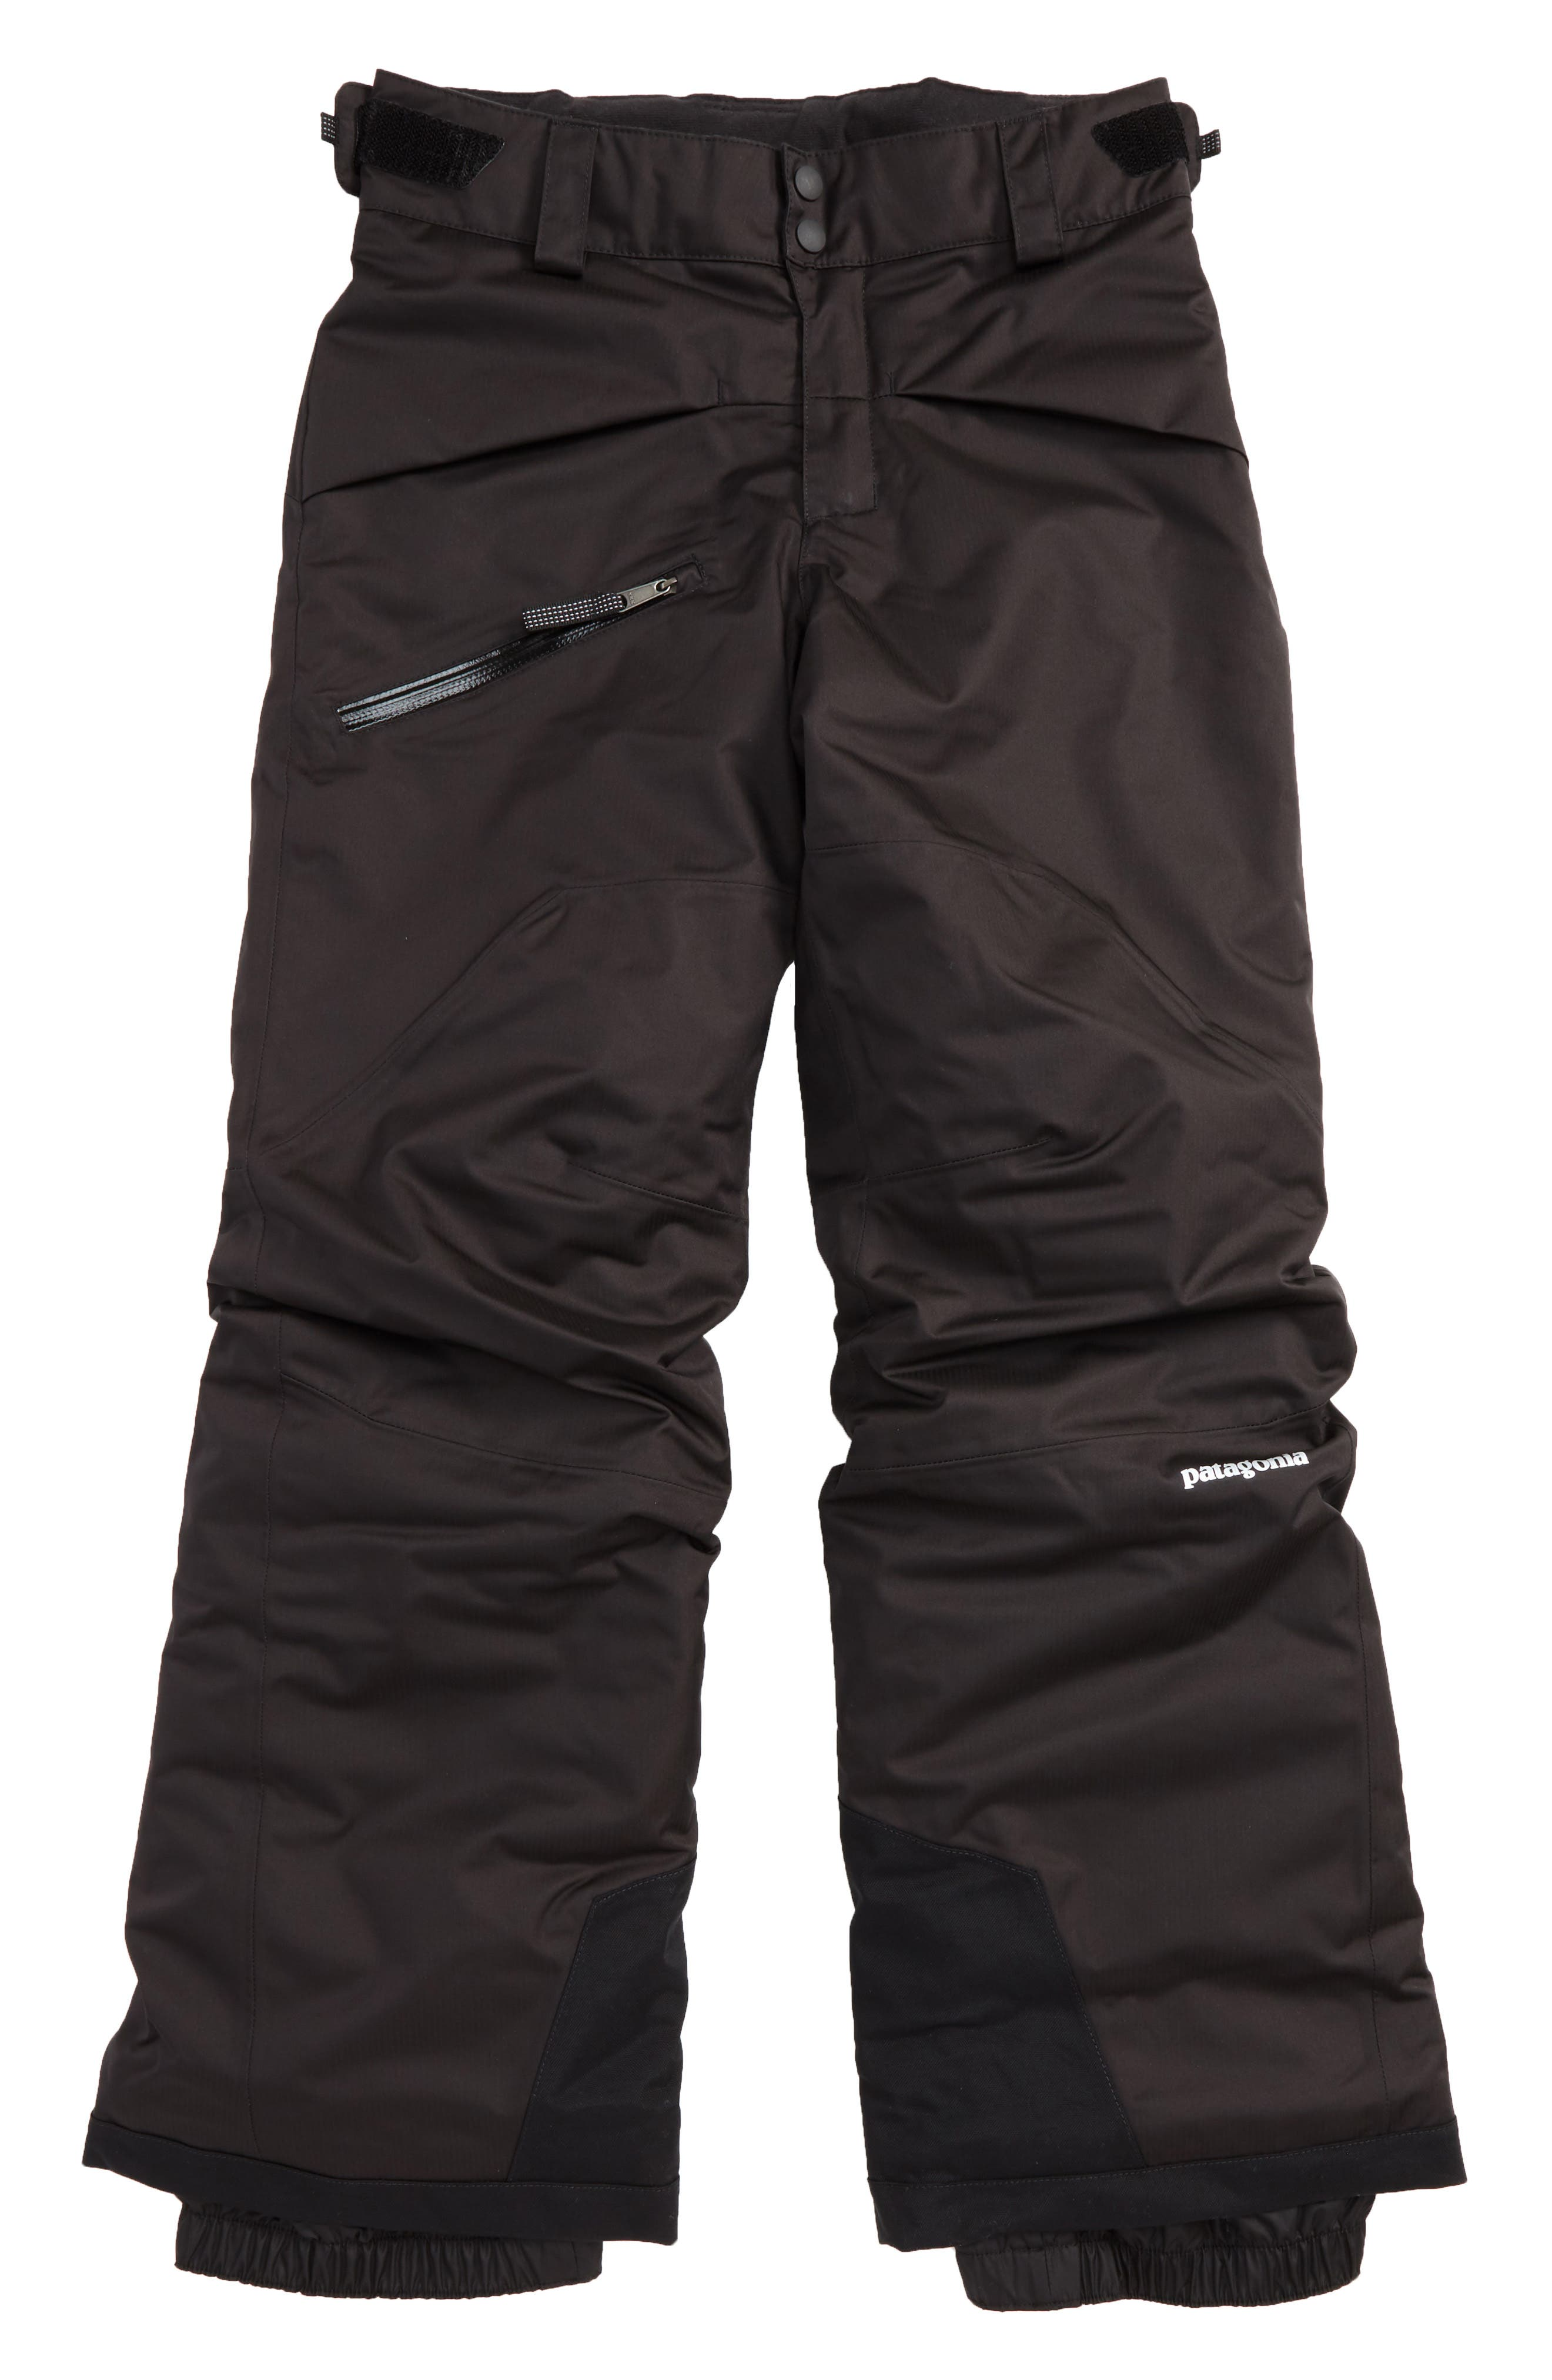 Main Image - Patagonia Snowshot Insulated Snow Pants (Little Boys & Big Boys)